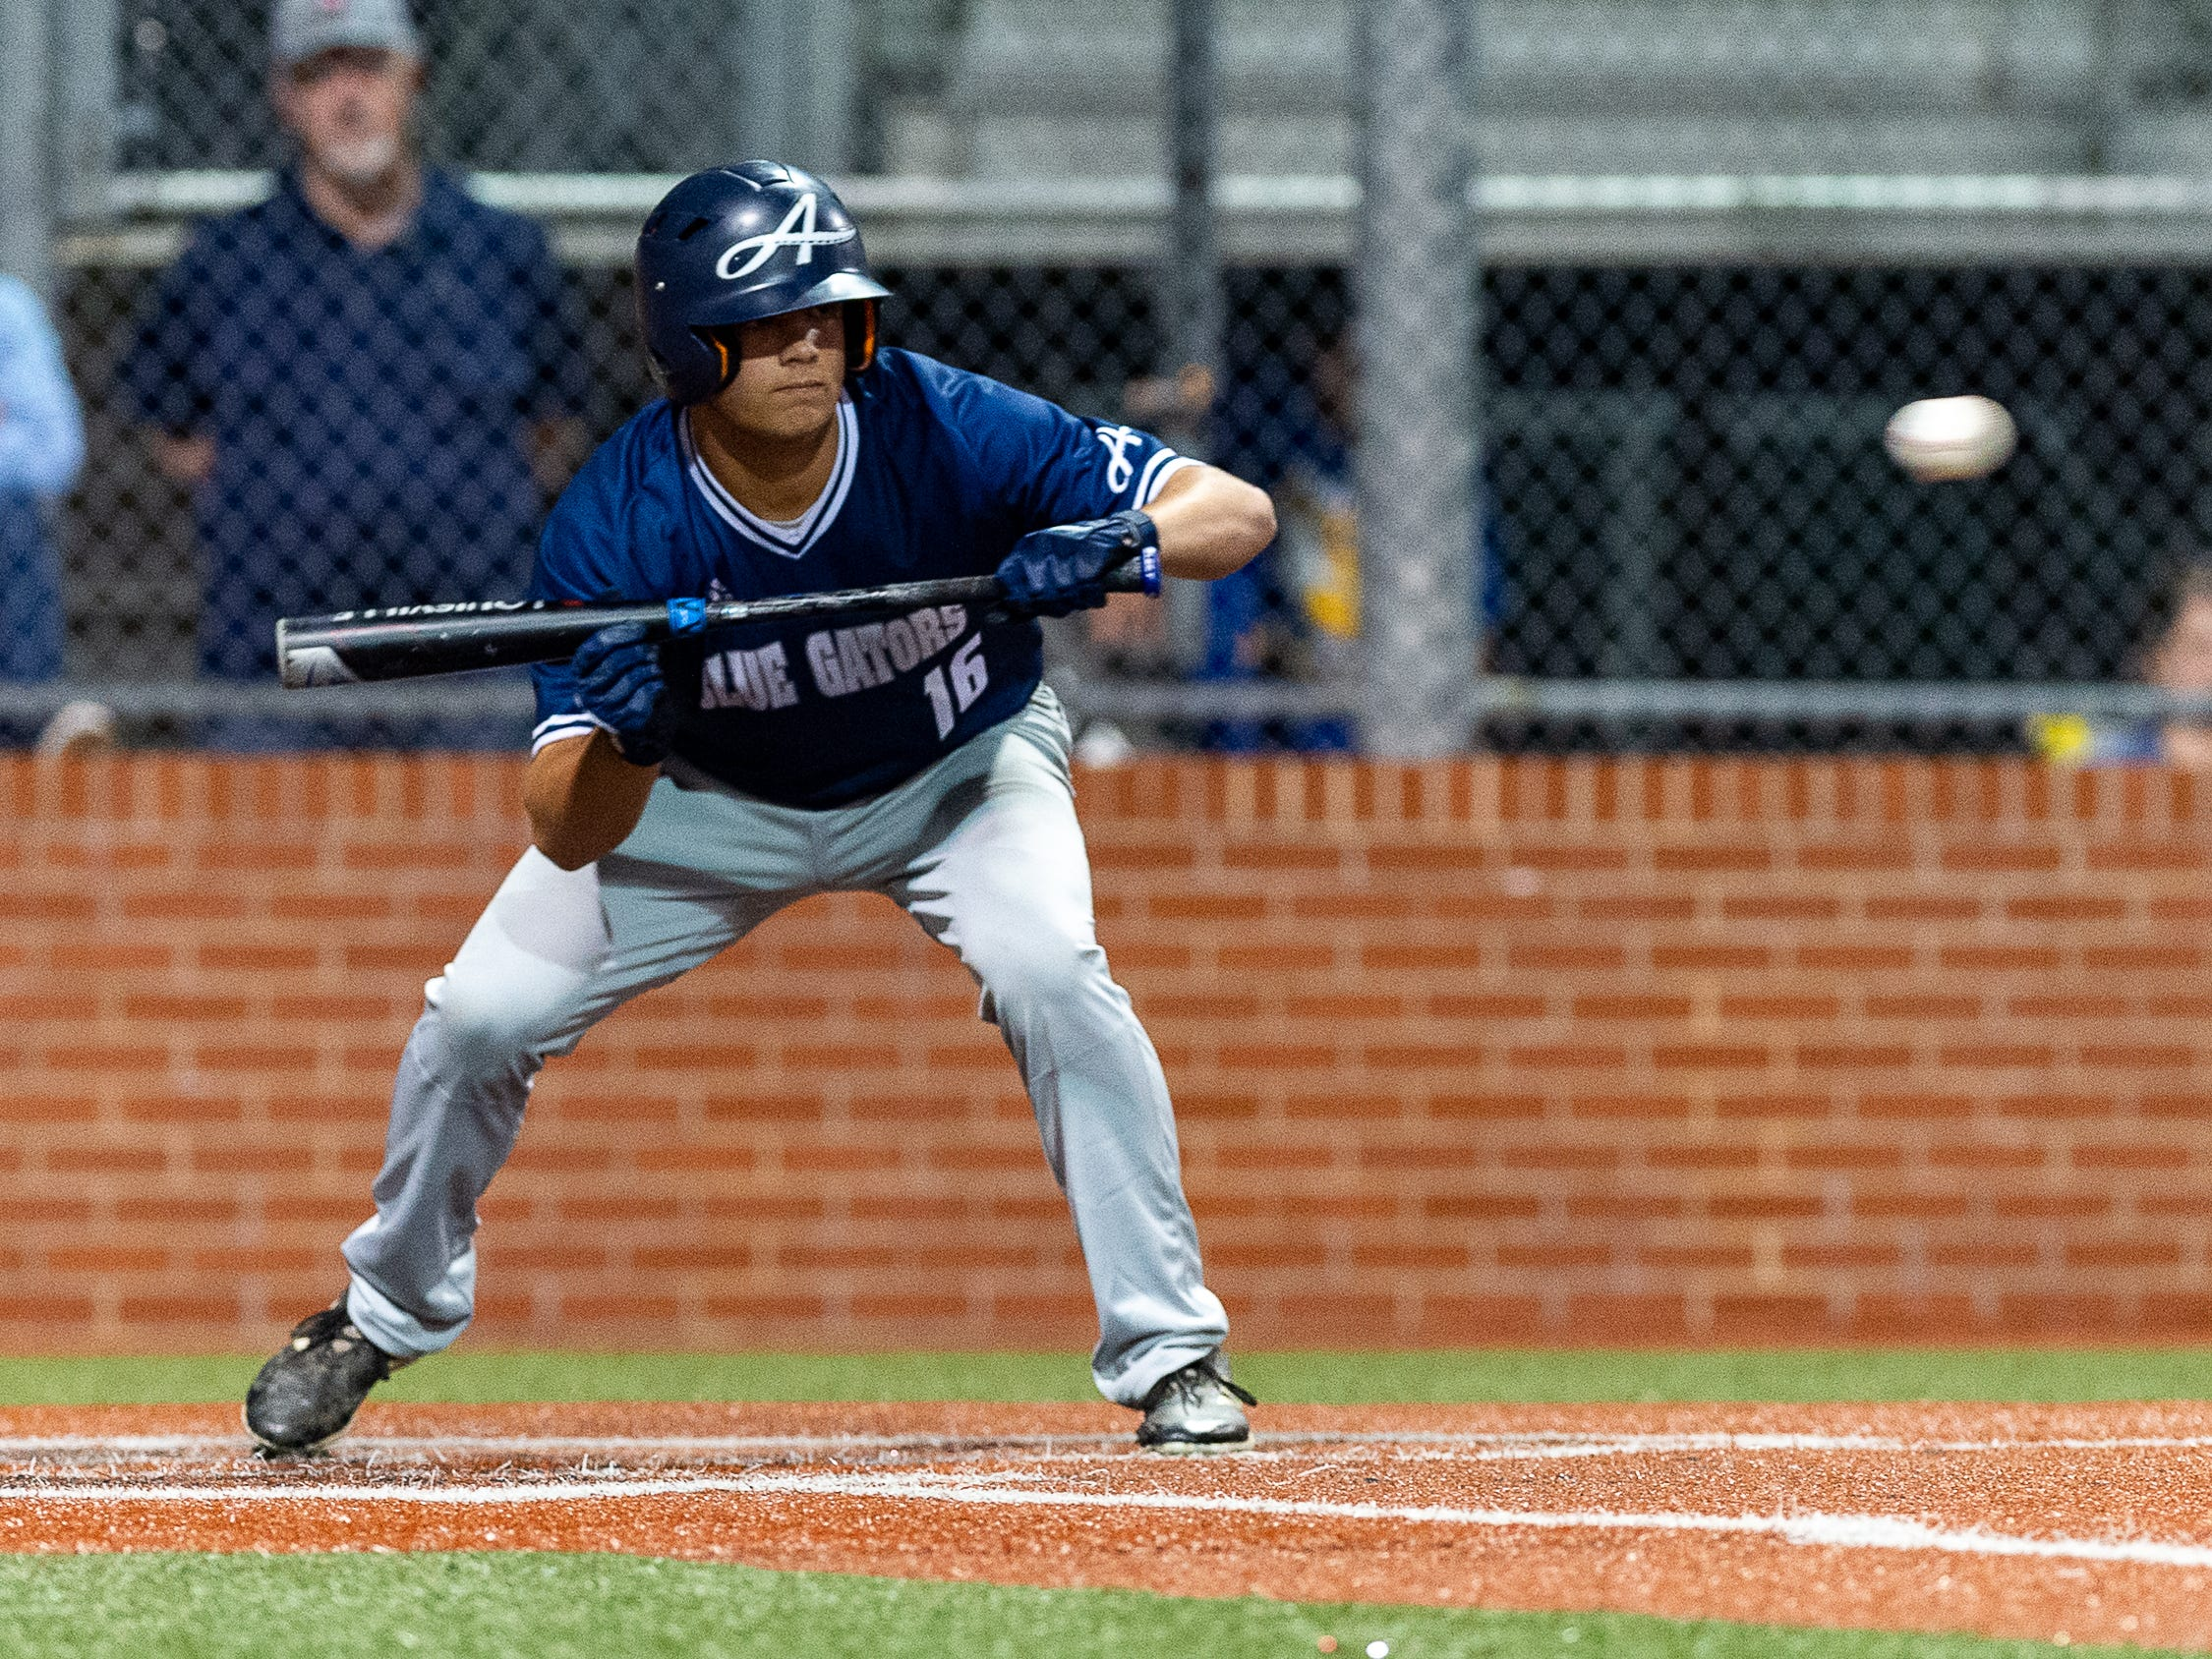 Blake Pearson at the plate as Ascension Episcopal takes on St. Thomas Aquinas in the semi final round at the LHSAA State Championship. Wednesday, May 8, 2019.